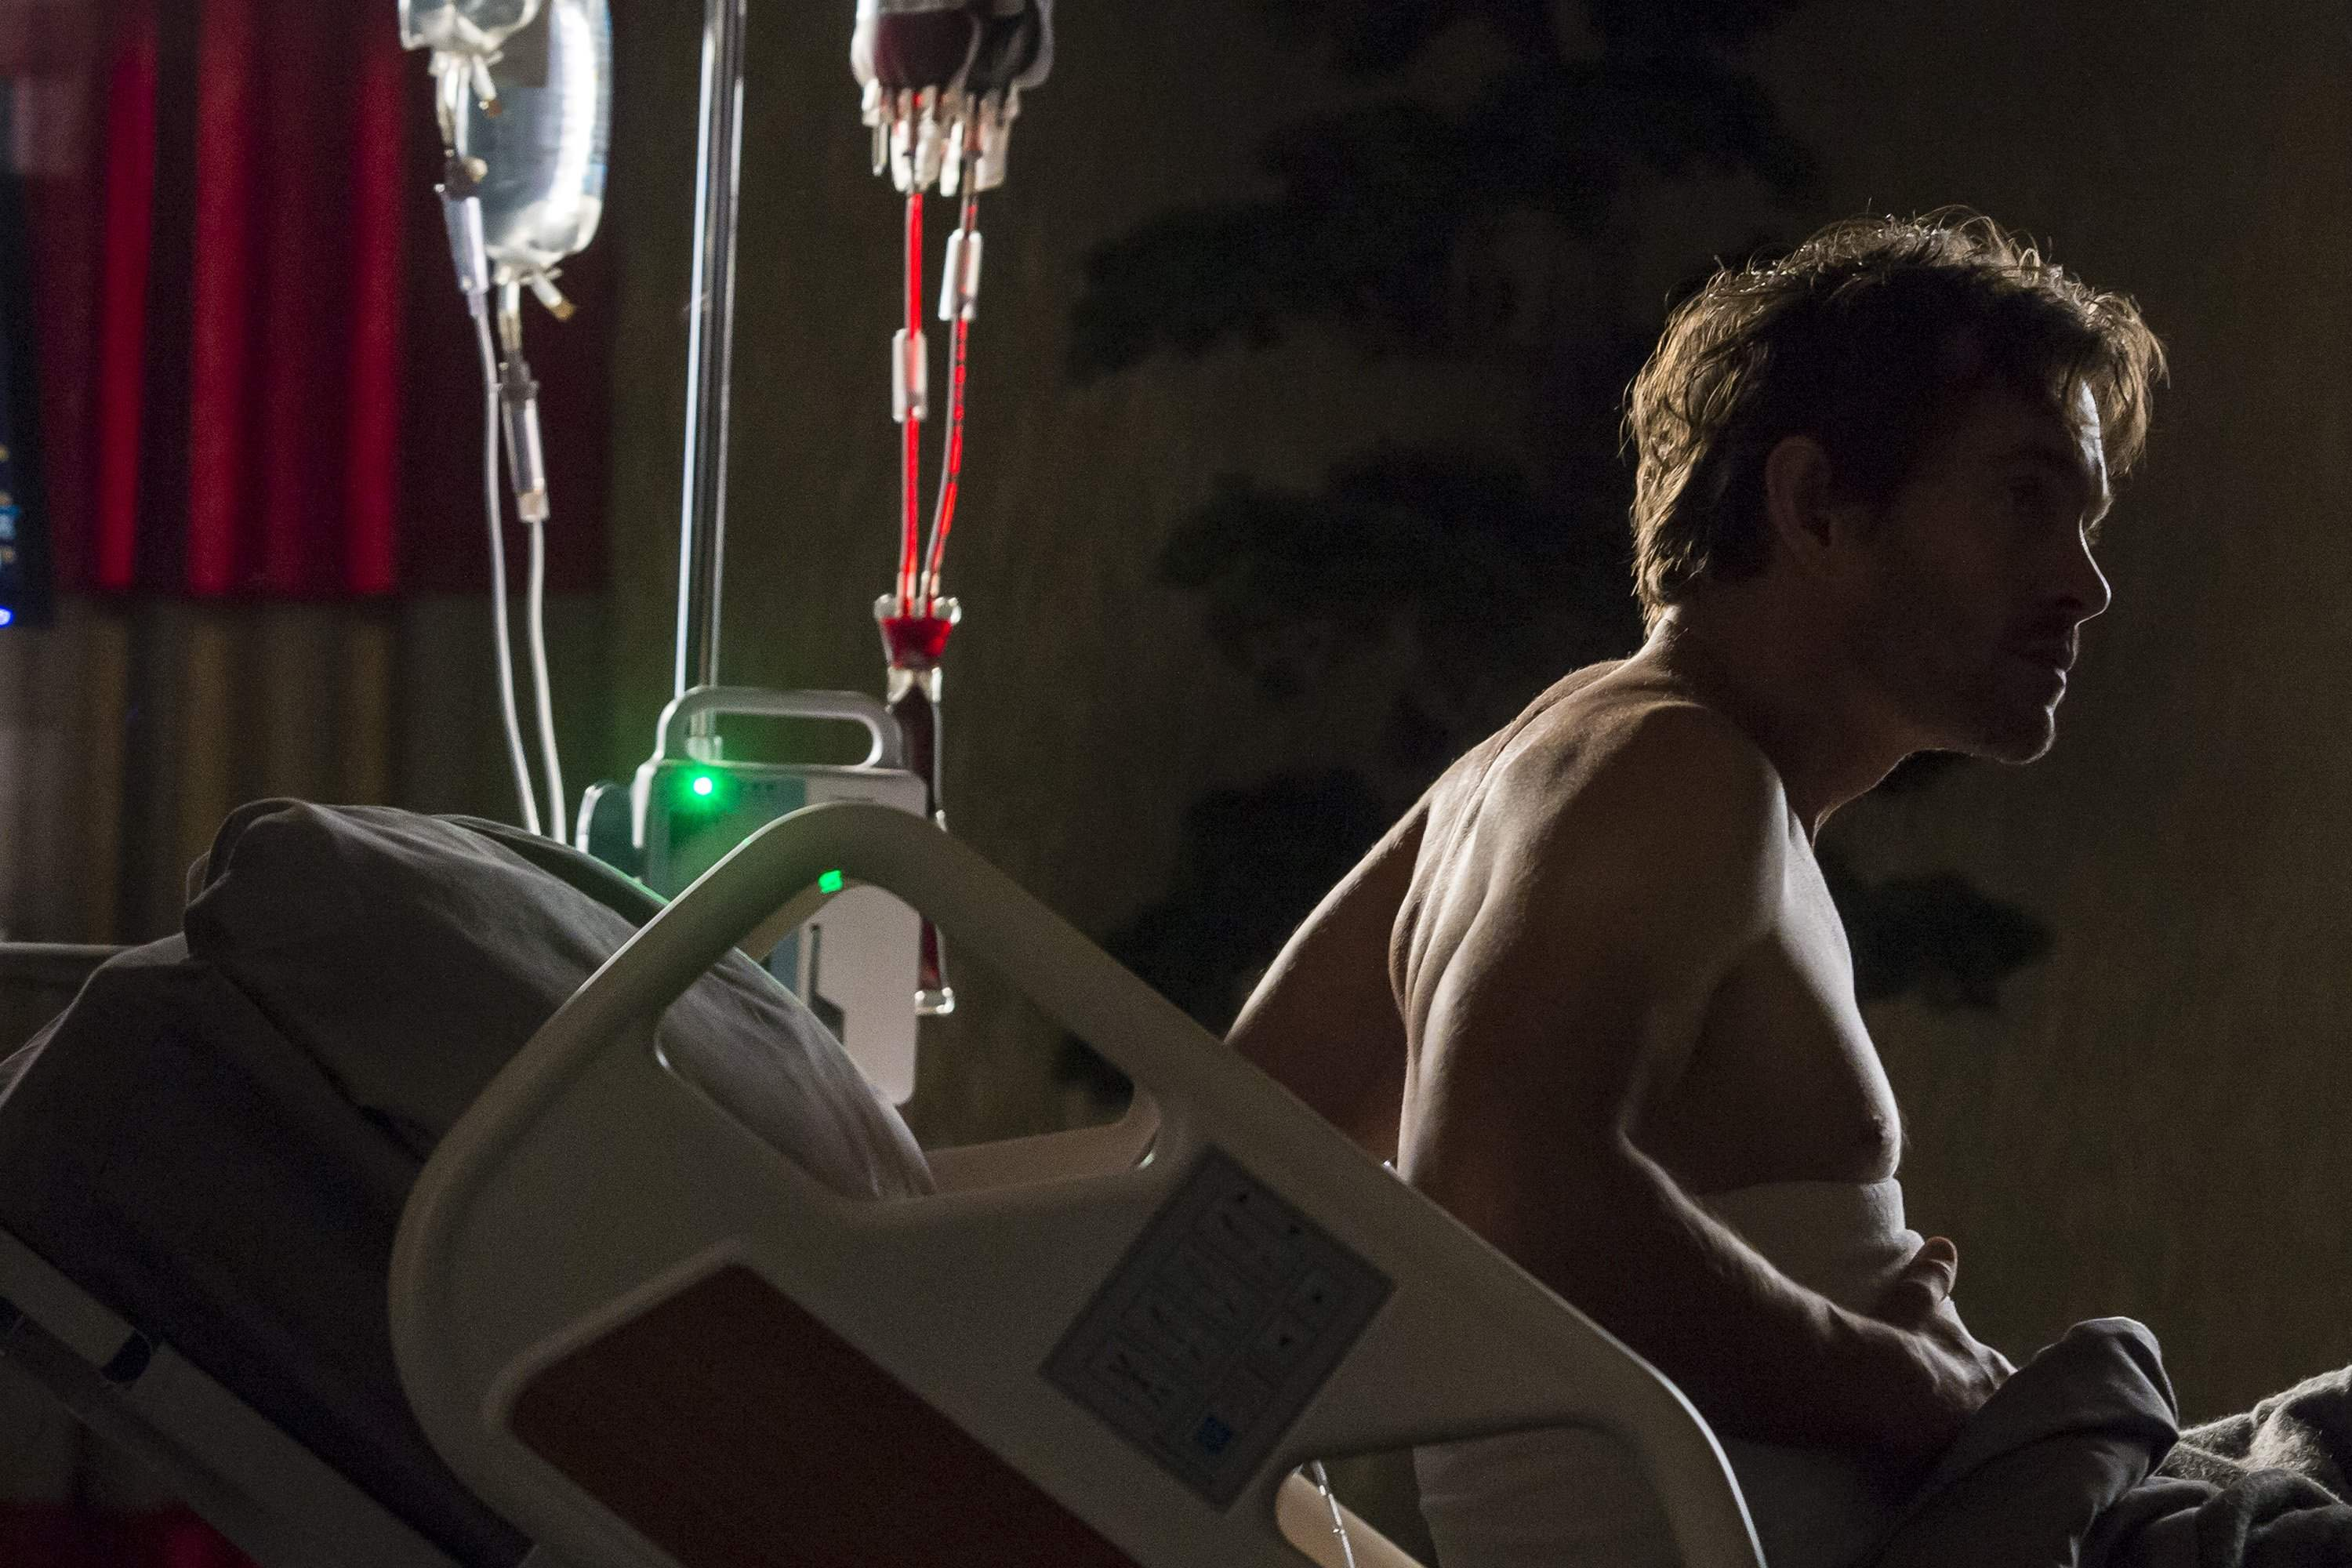 Will in hospital bed